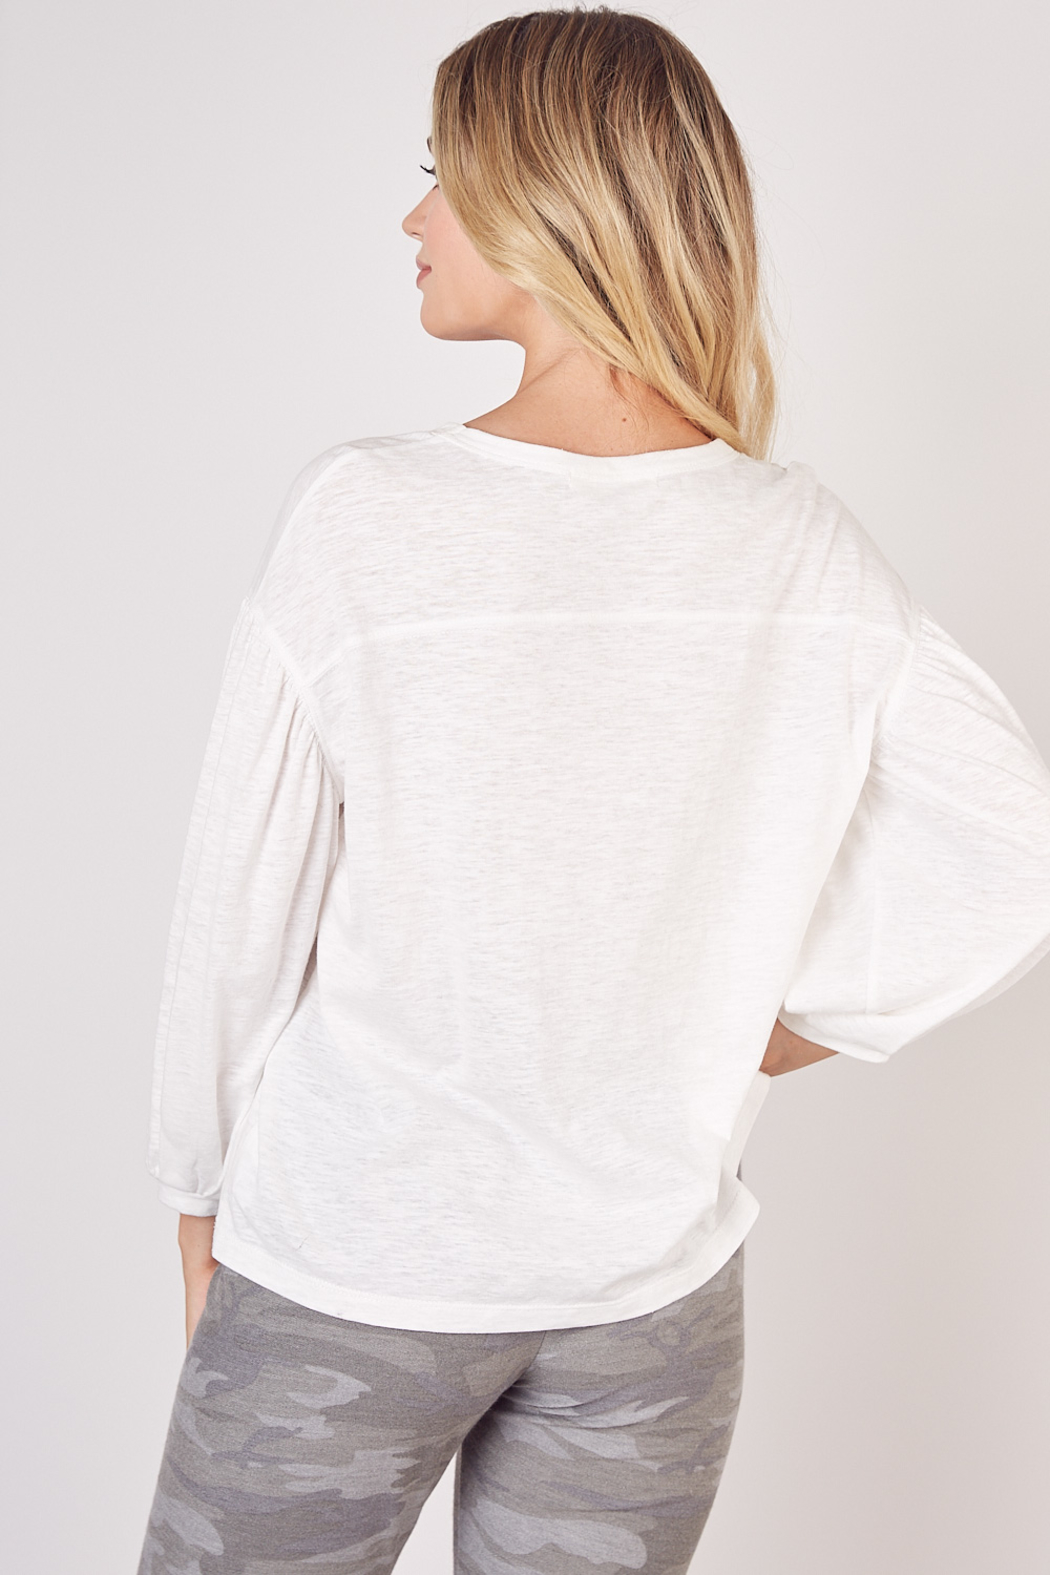 Mustard Seed  Lightweight Long Sleeve Top - Back Cropped Image